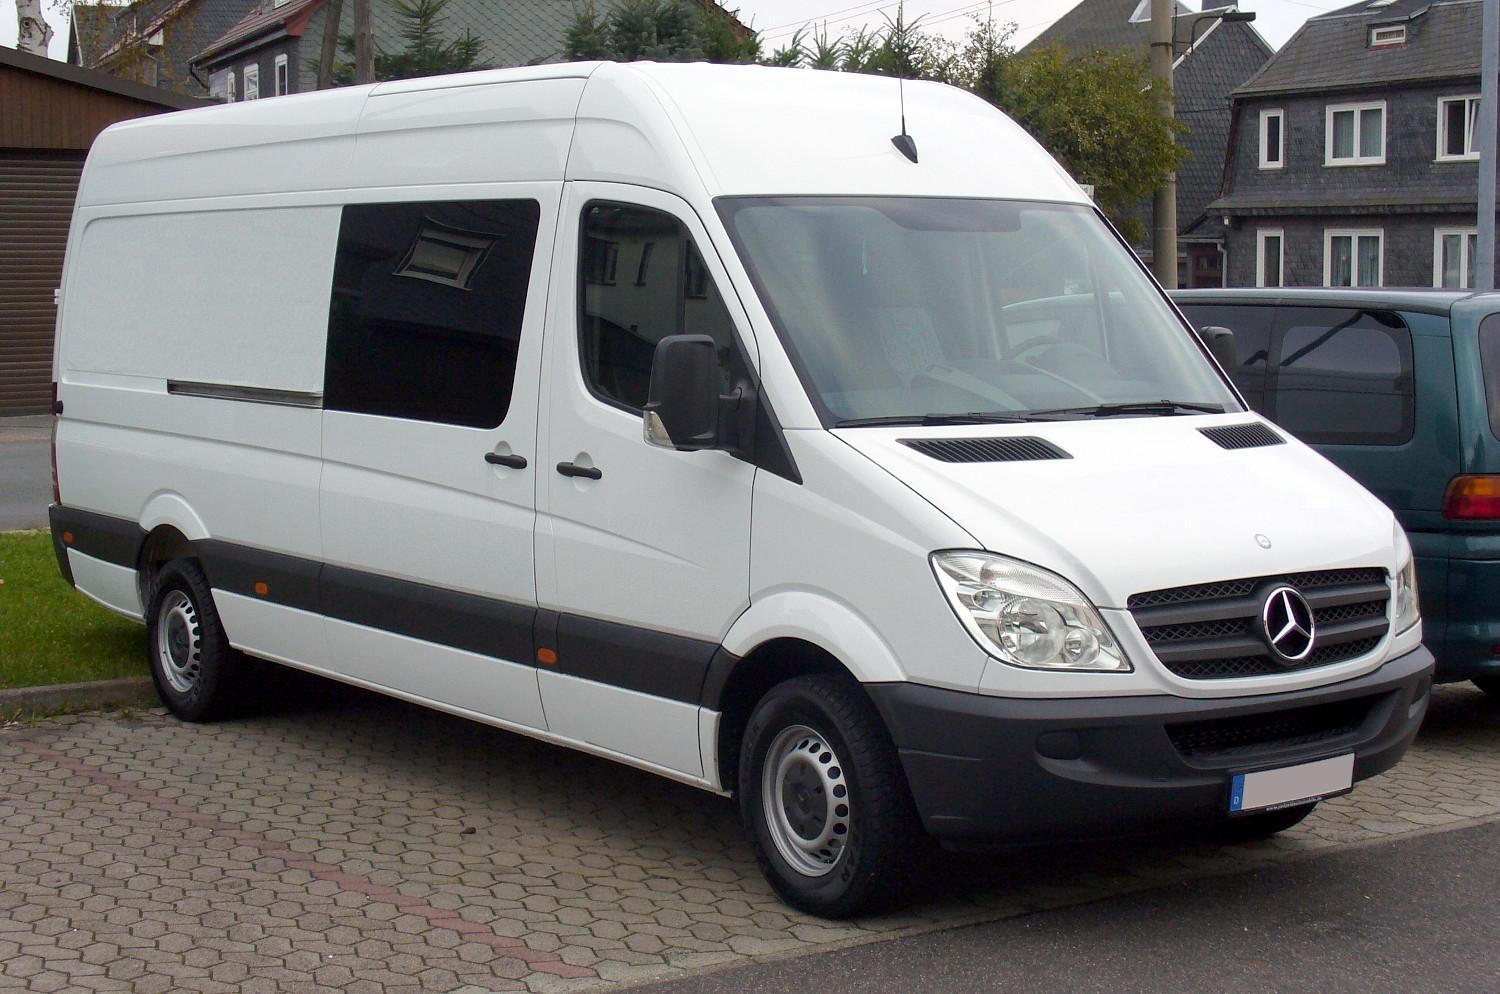 Mercedes-Benz Sprinter 224 2010 photo - 7